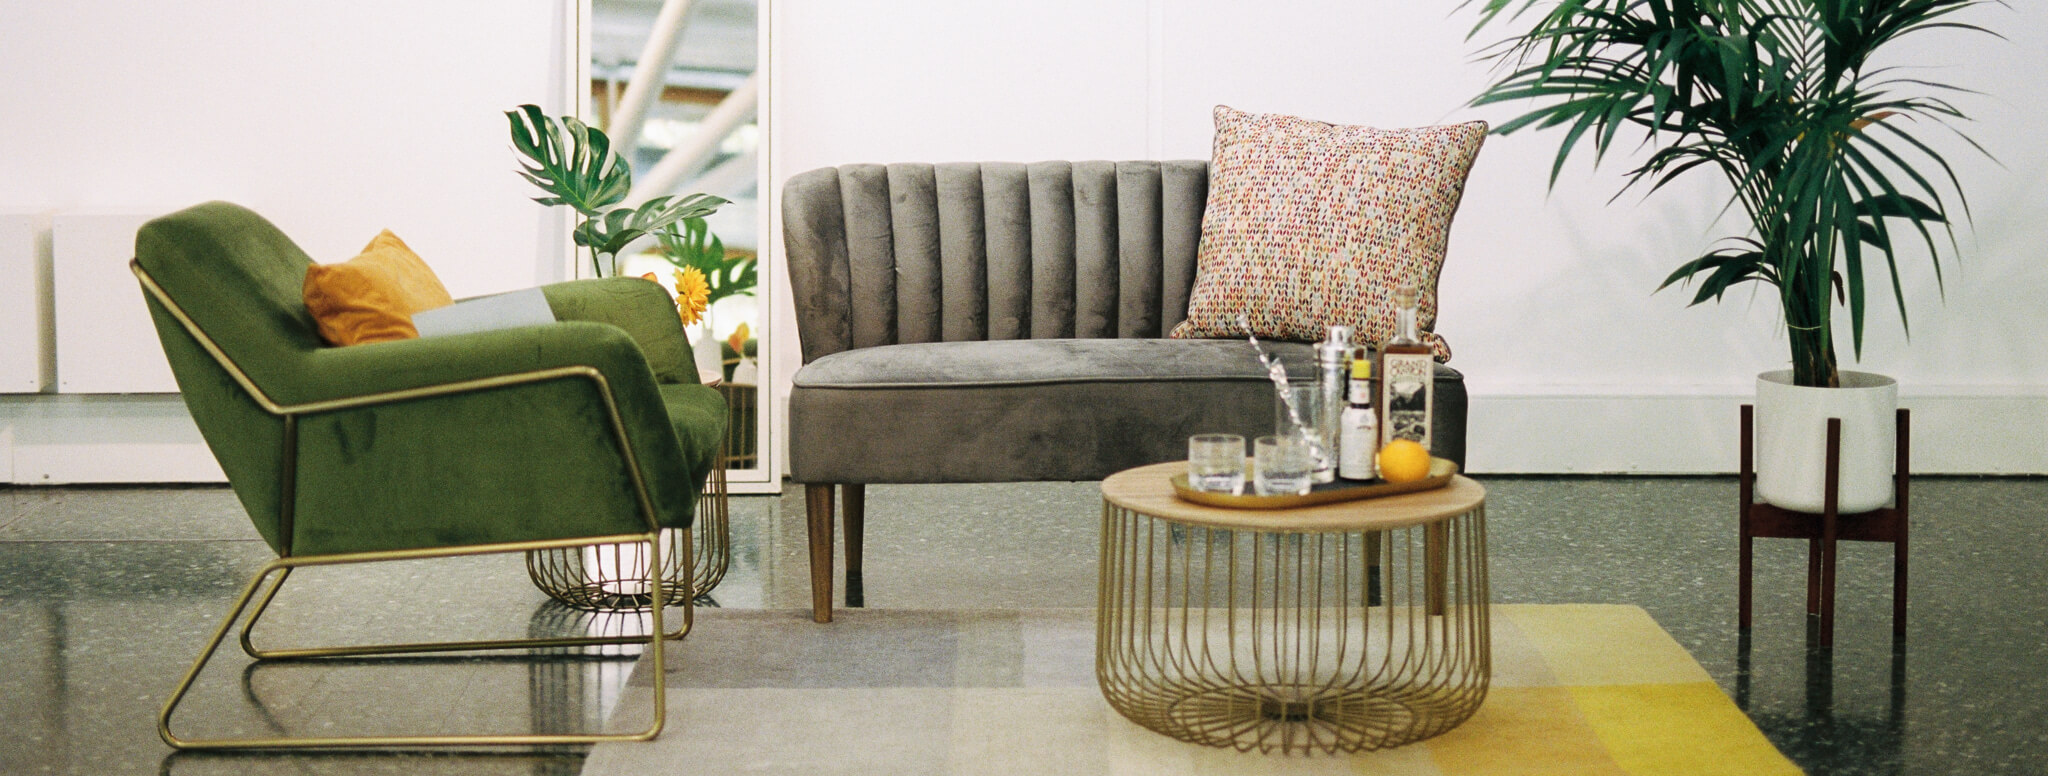 frequently-asked-questions-about-furniture-hire